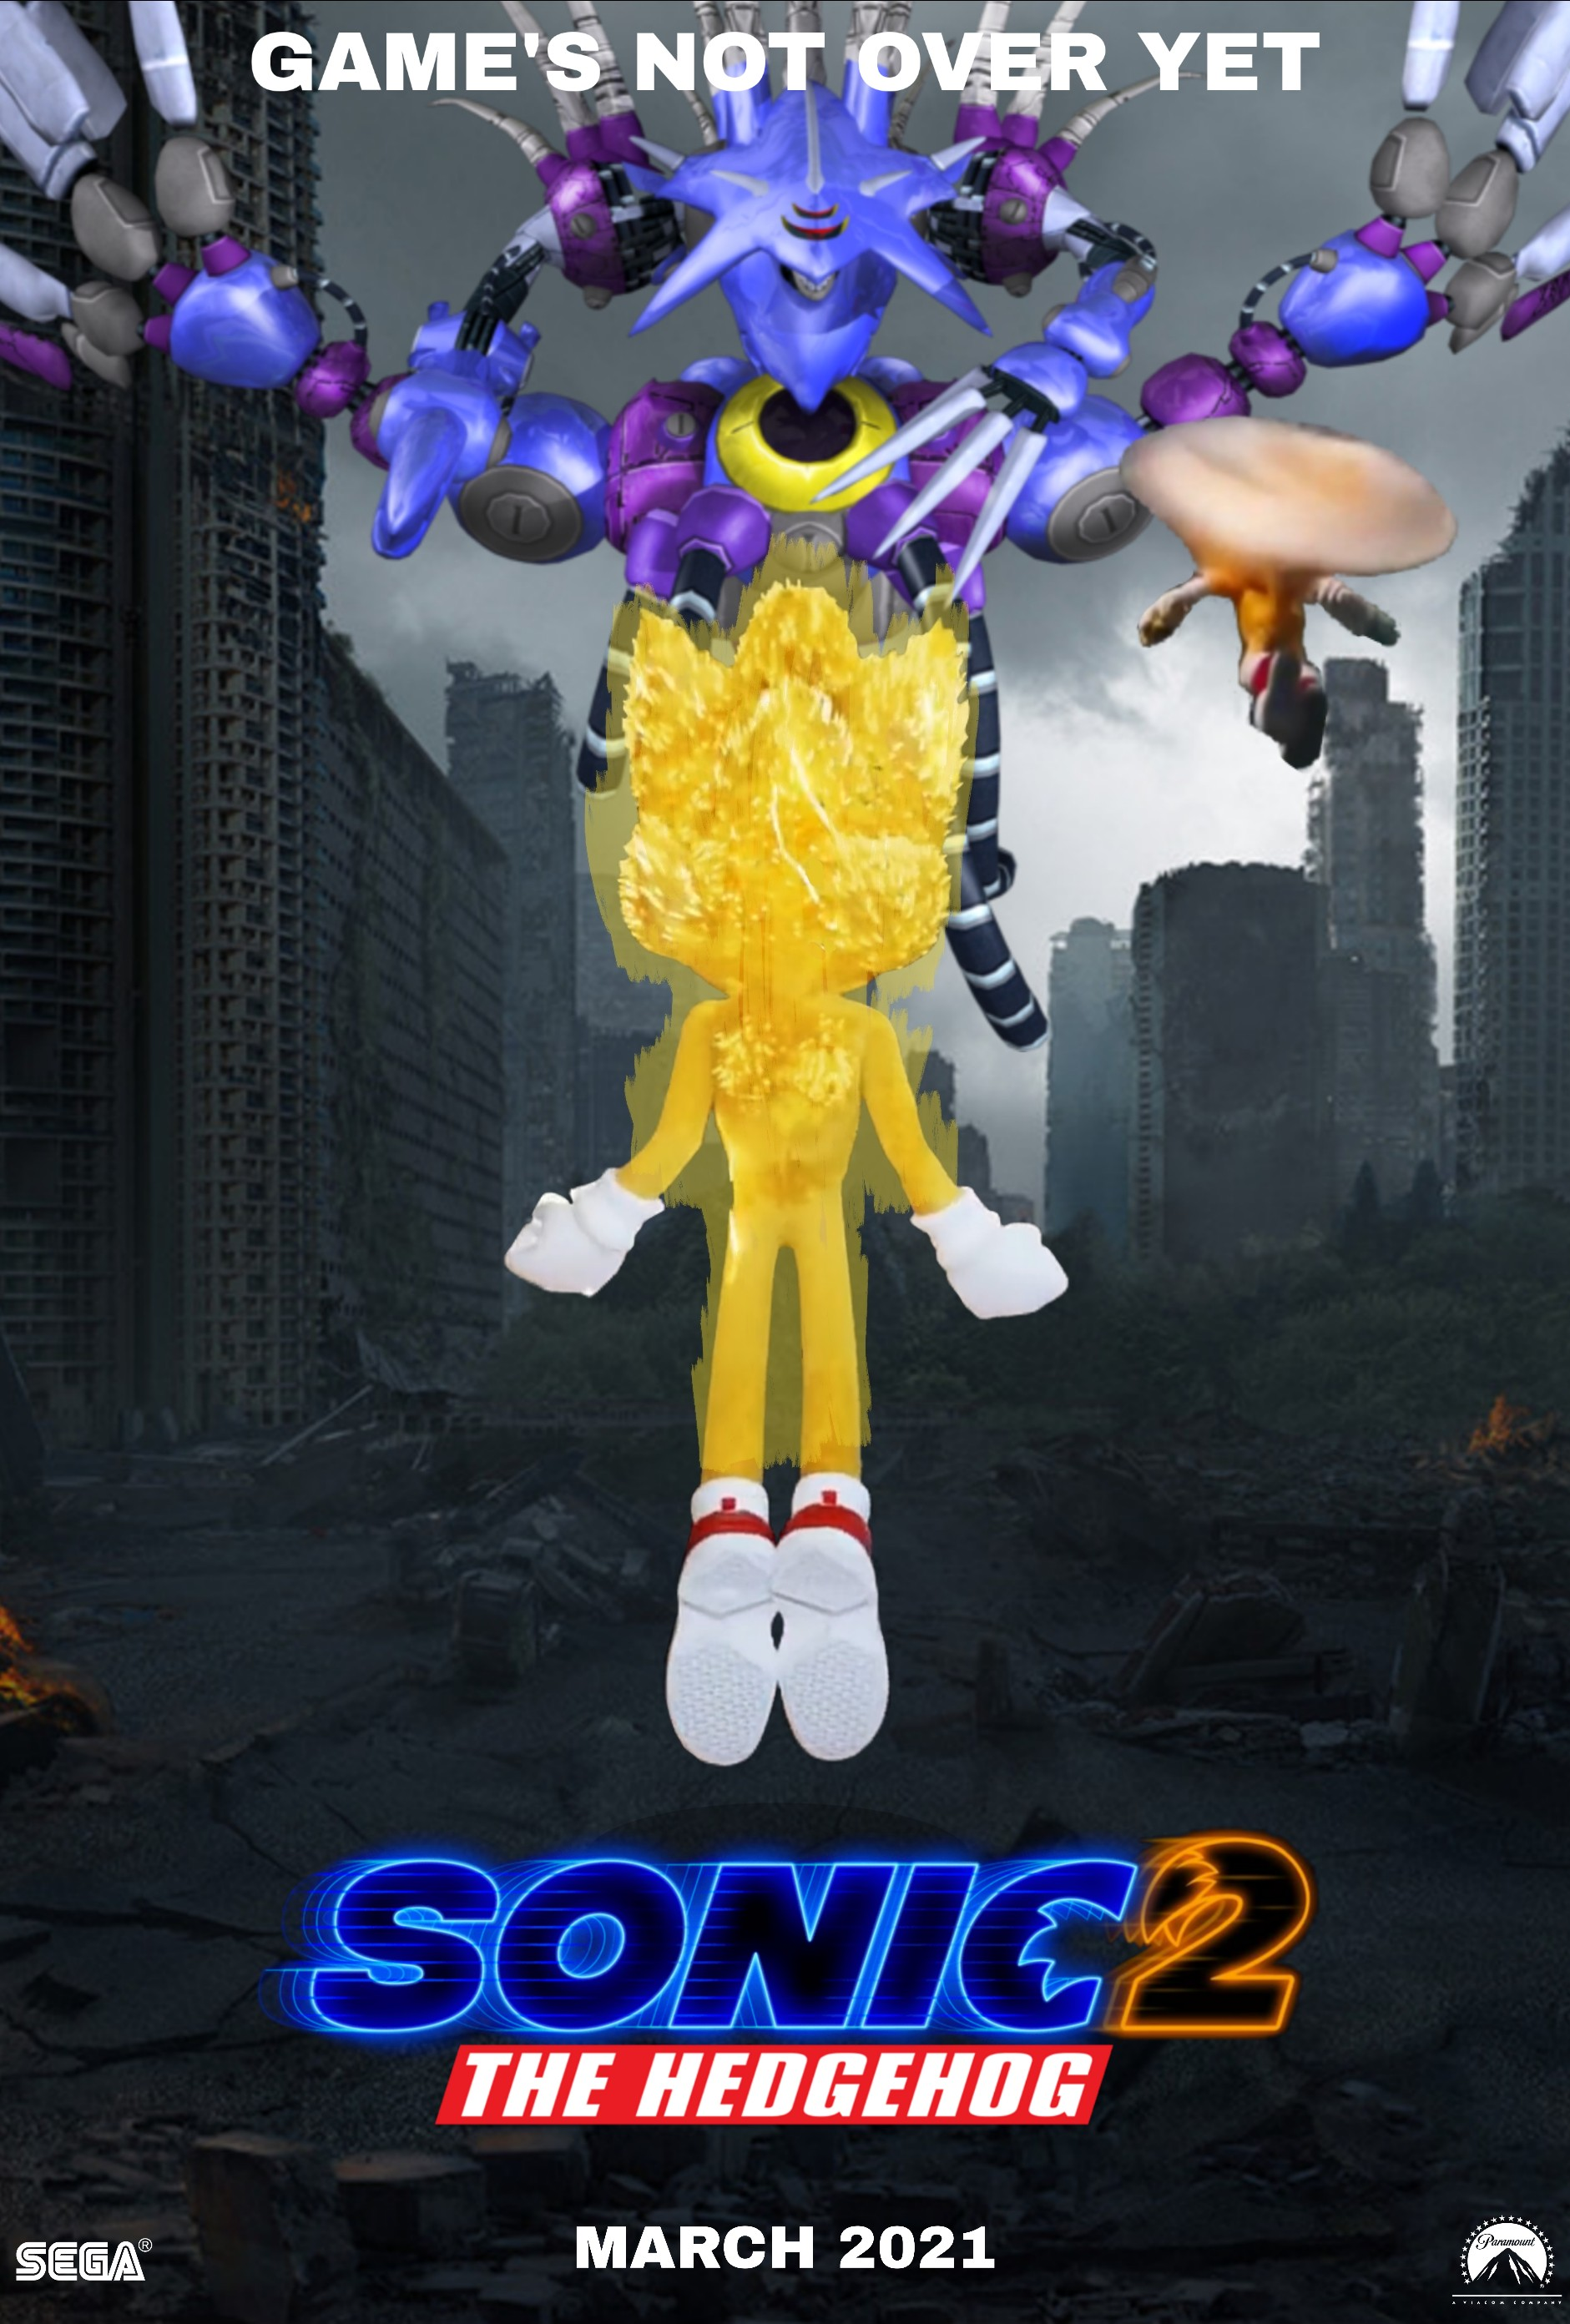 Sonic Movie 2 Fan Made Poster By Abealy2 On Deviantart